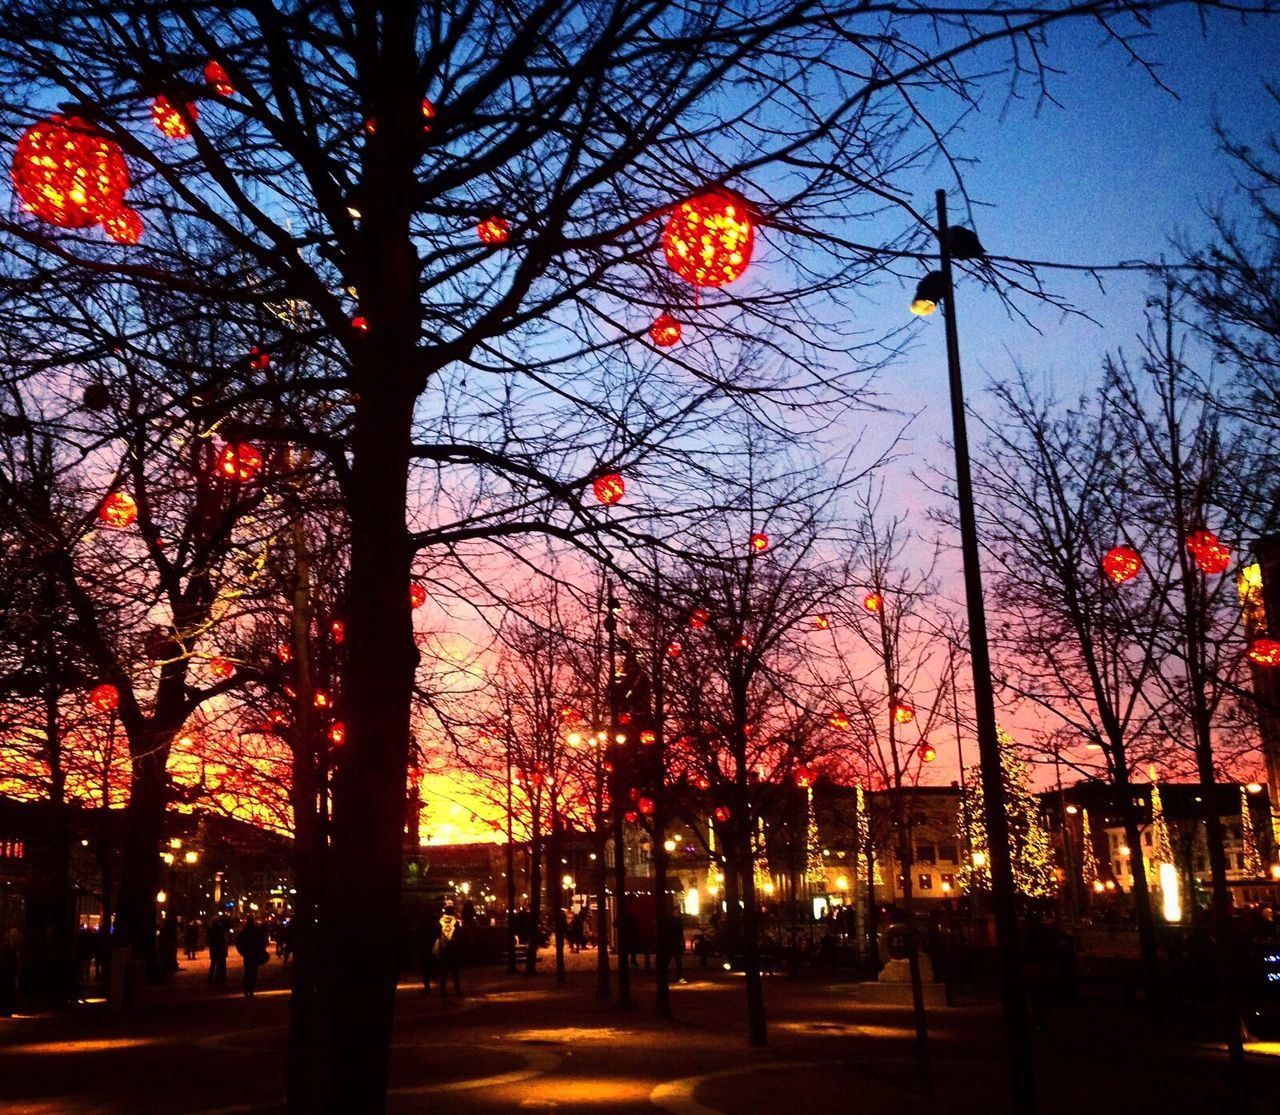 Sunset Gothenburg Sweden Christmas Lights Christmastime Christmas Decorations Christmas Around The World Tree Lights Colour Of Life Colors Beautiful My Year My View